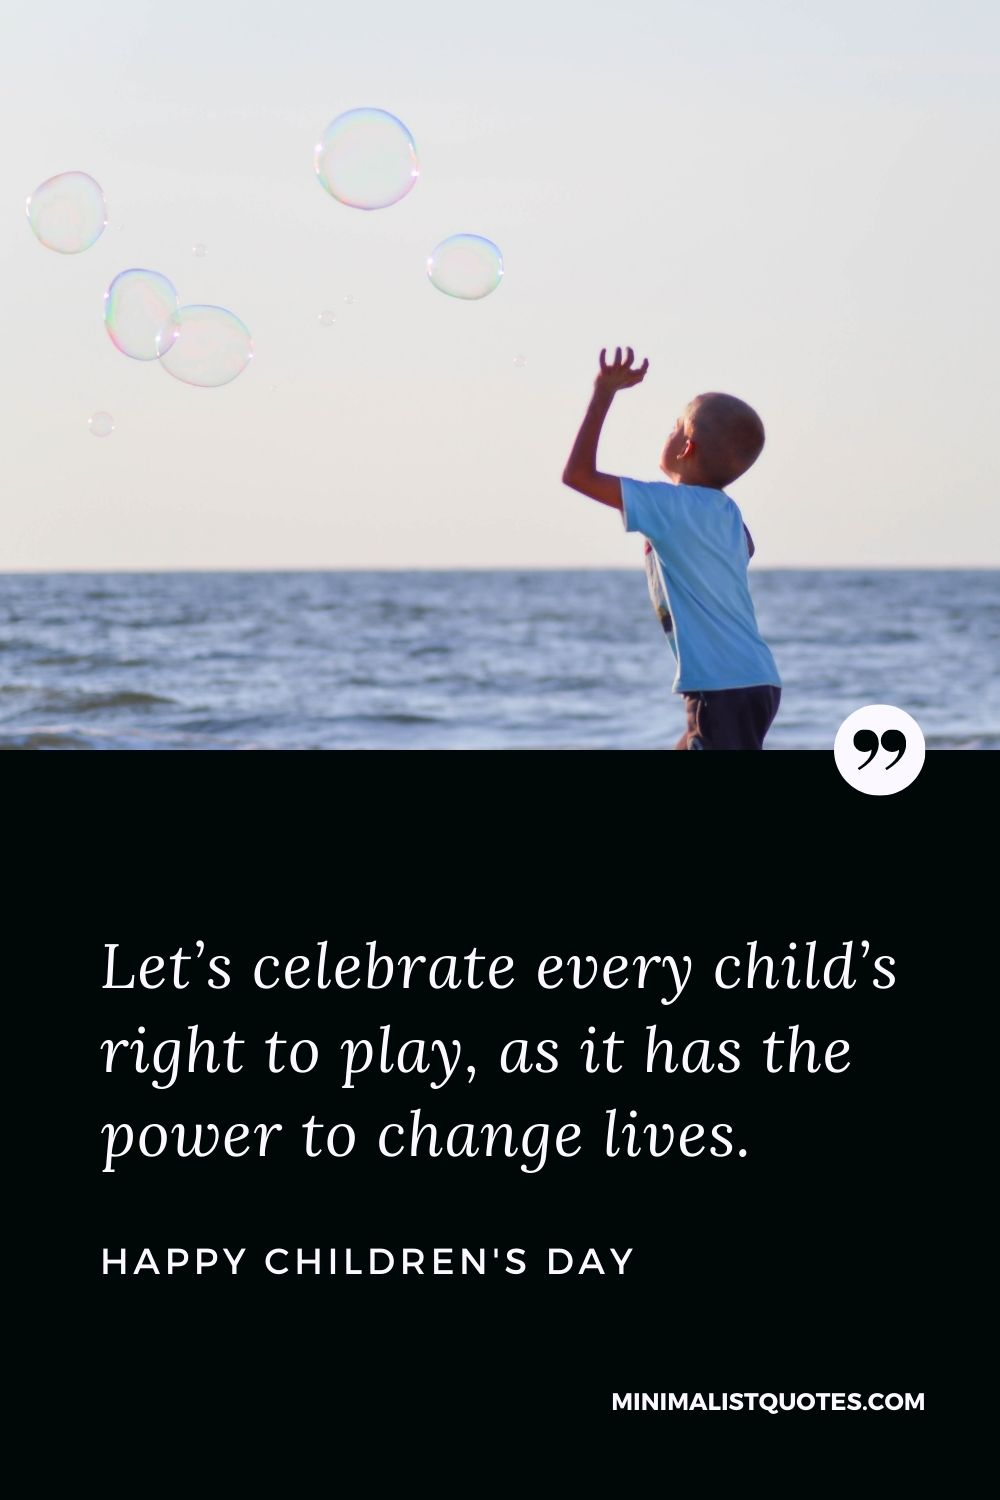 Children's Day Wish & Message With HD Image: Let's celebrate every child's right to play, as it has the power to change lives. Happy Children Day!